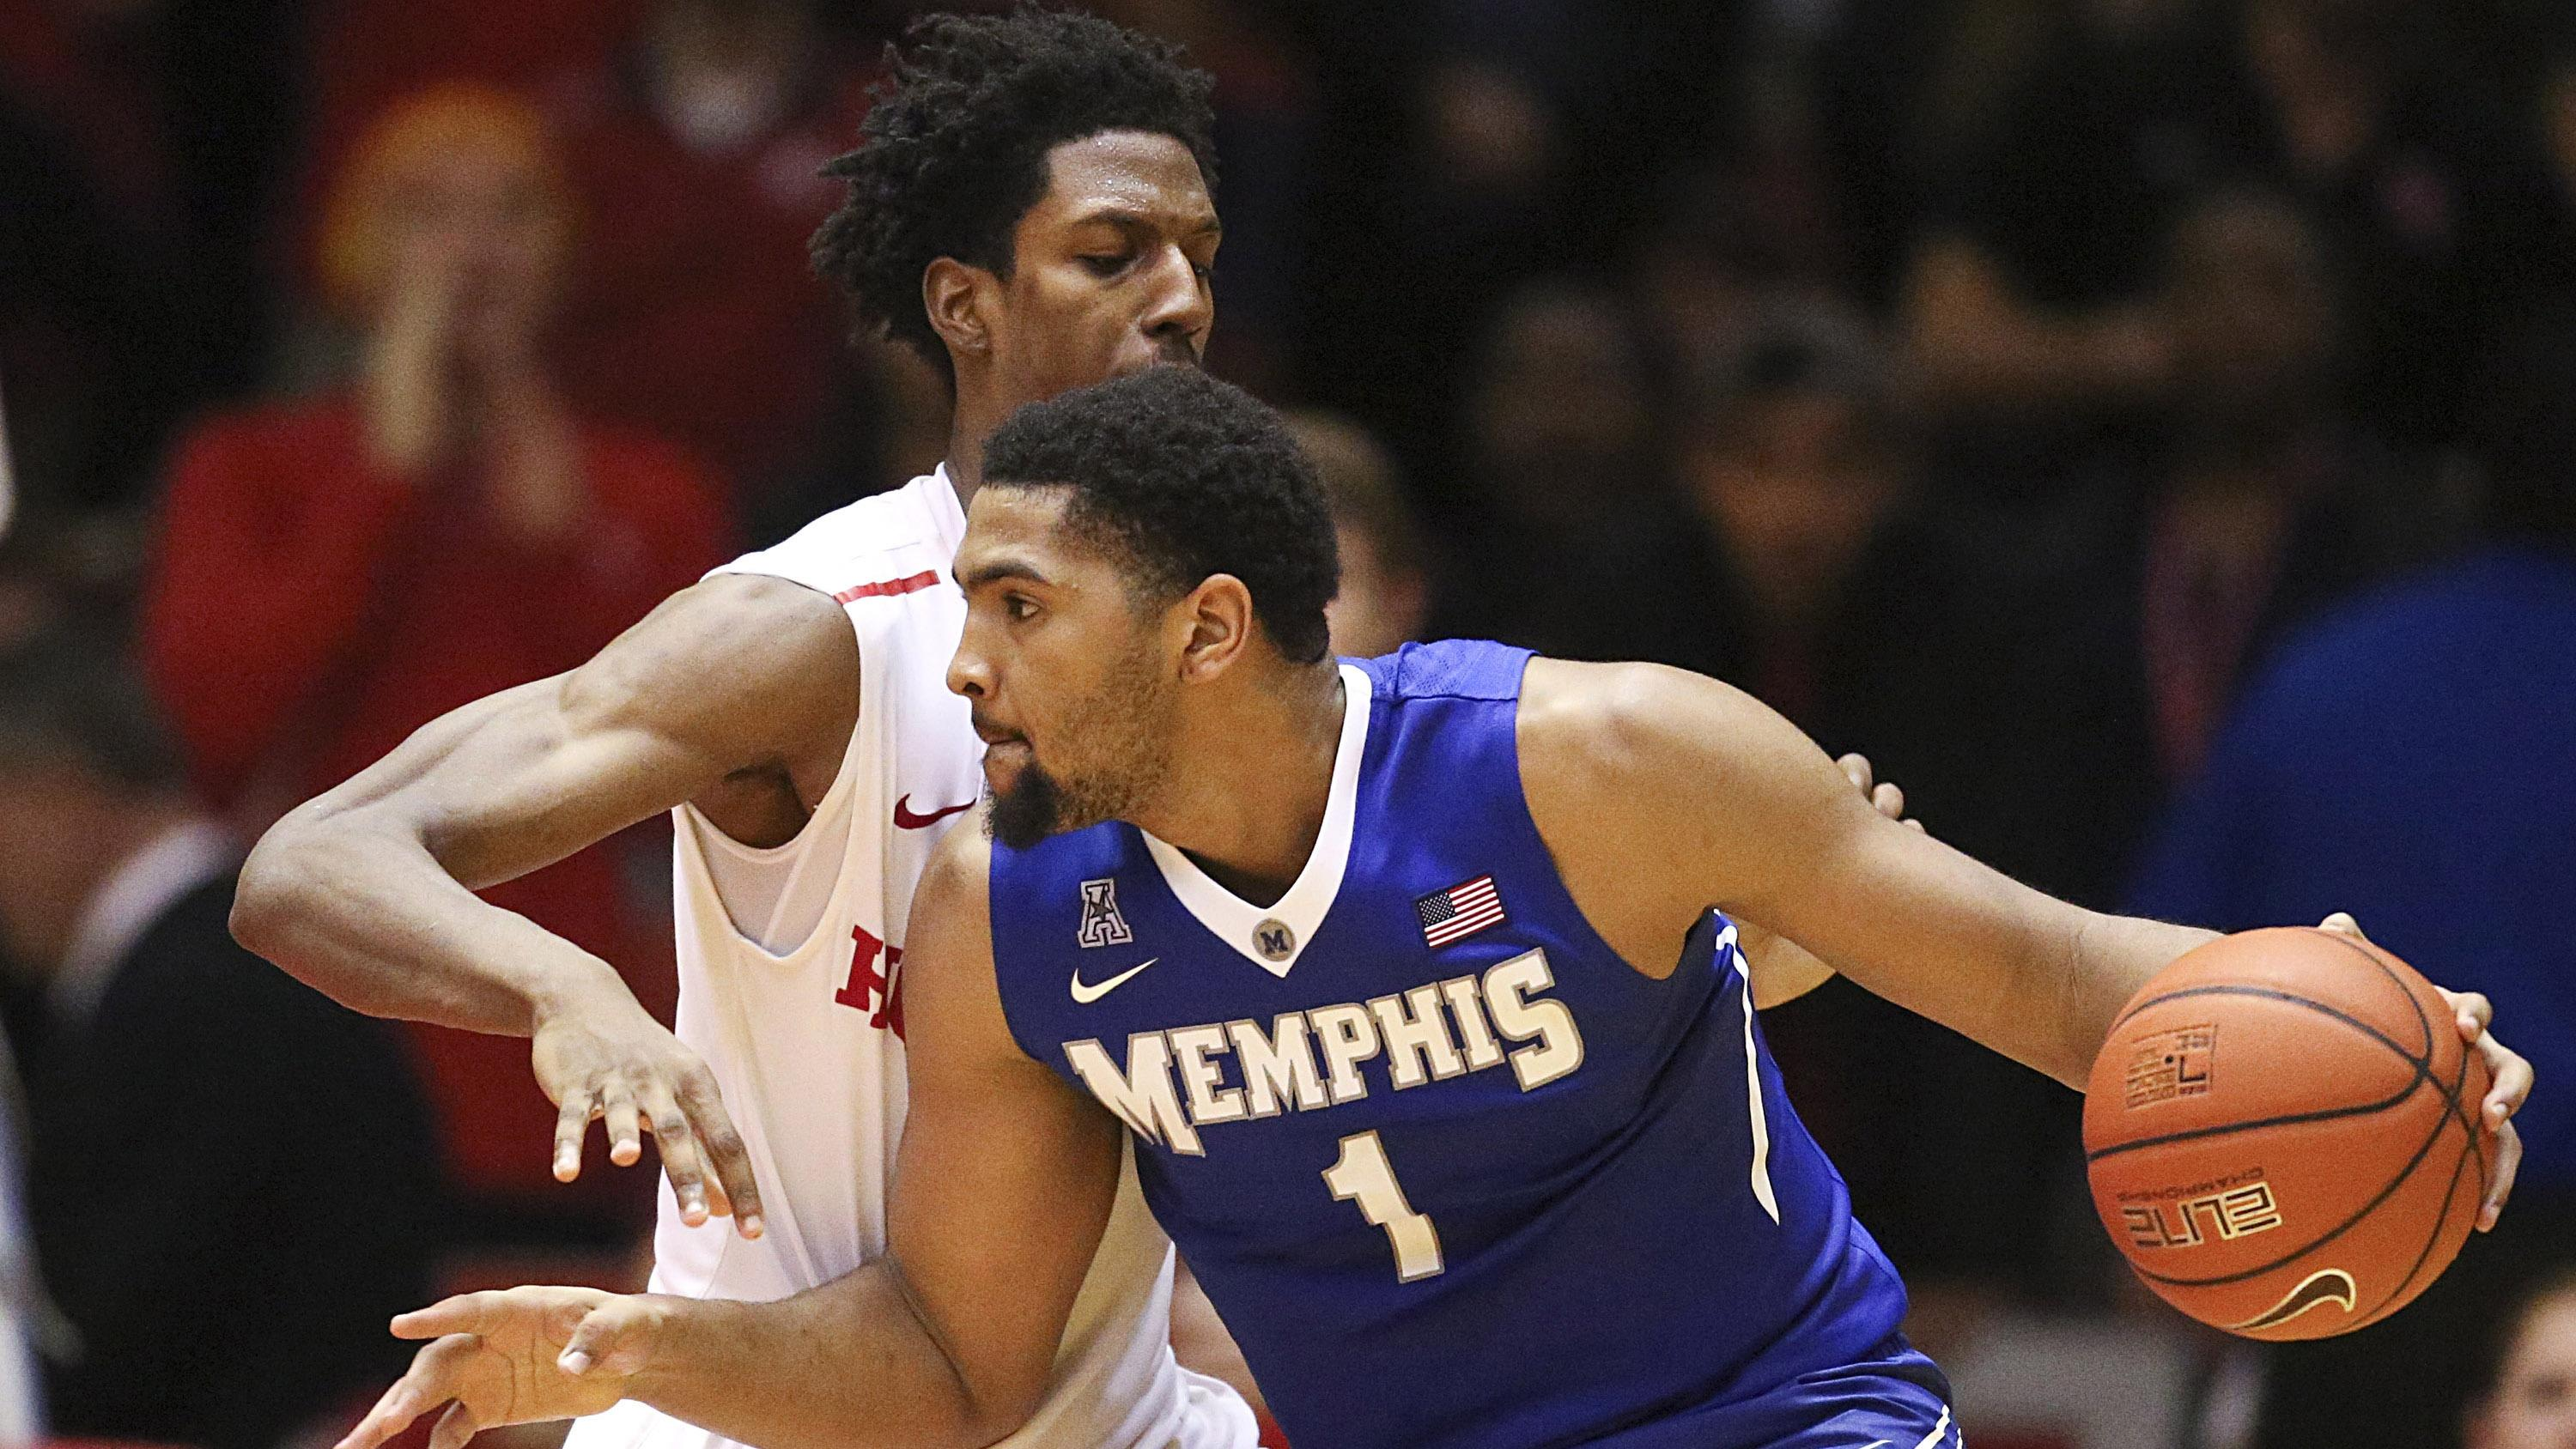 Kansas forward Dedric Lawson averaged nearly a double-double at Memphis